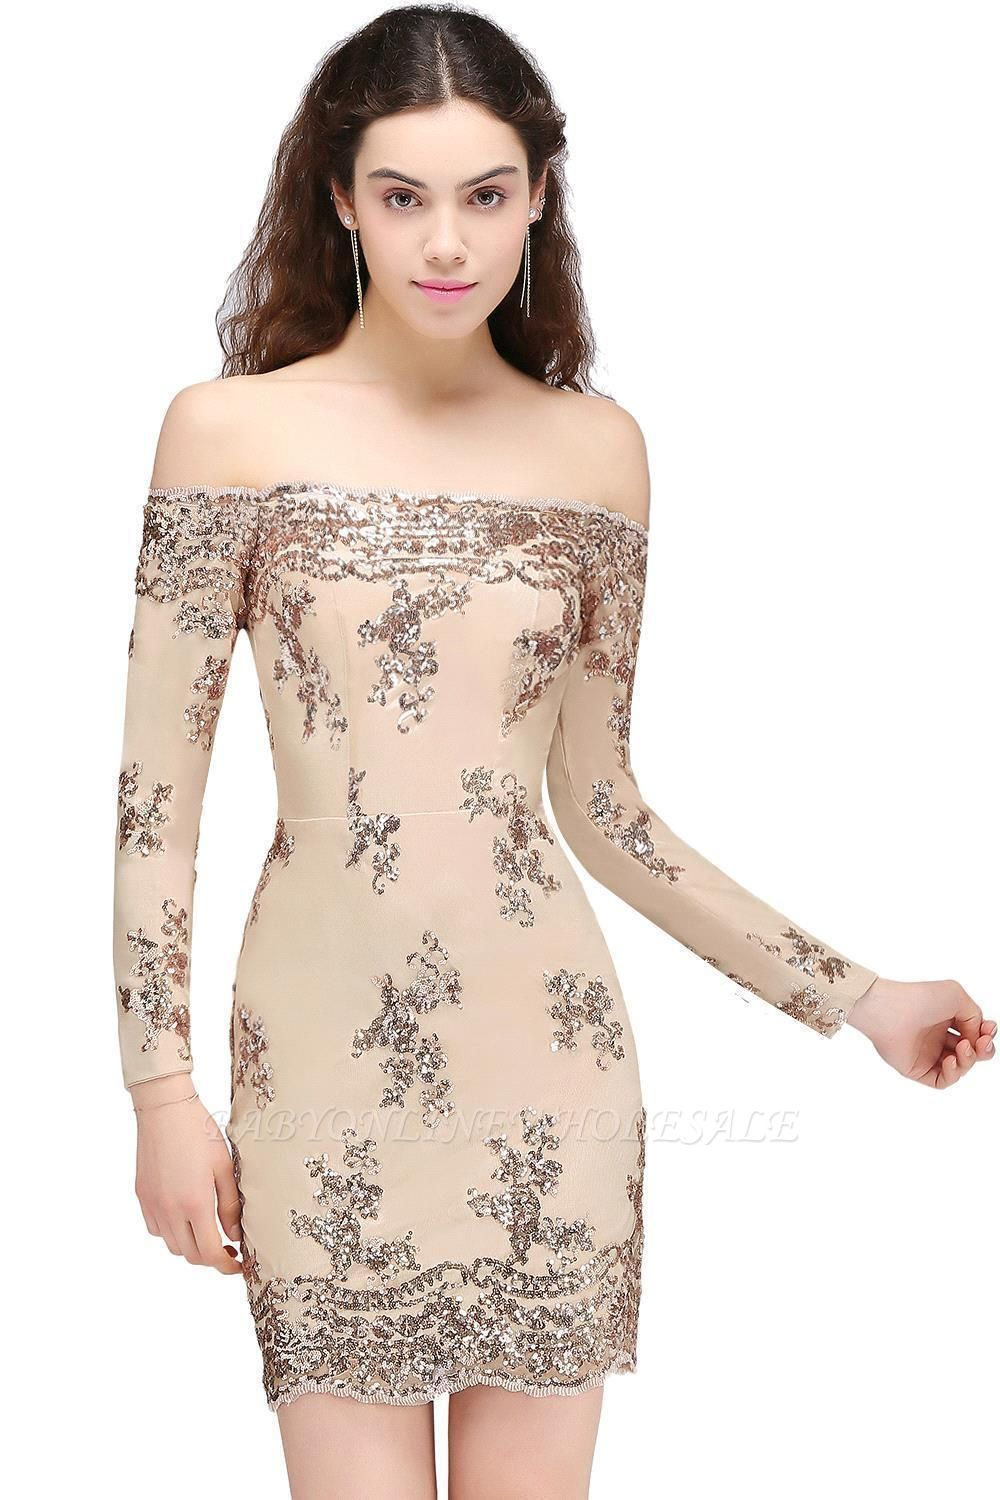 CASSANDRA   Sheath Off-the-Shoulder Nude Pink Homecoming Dresses with Sequins